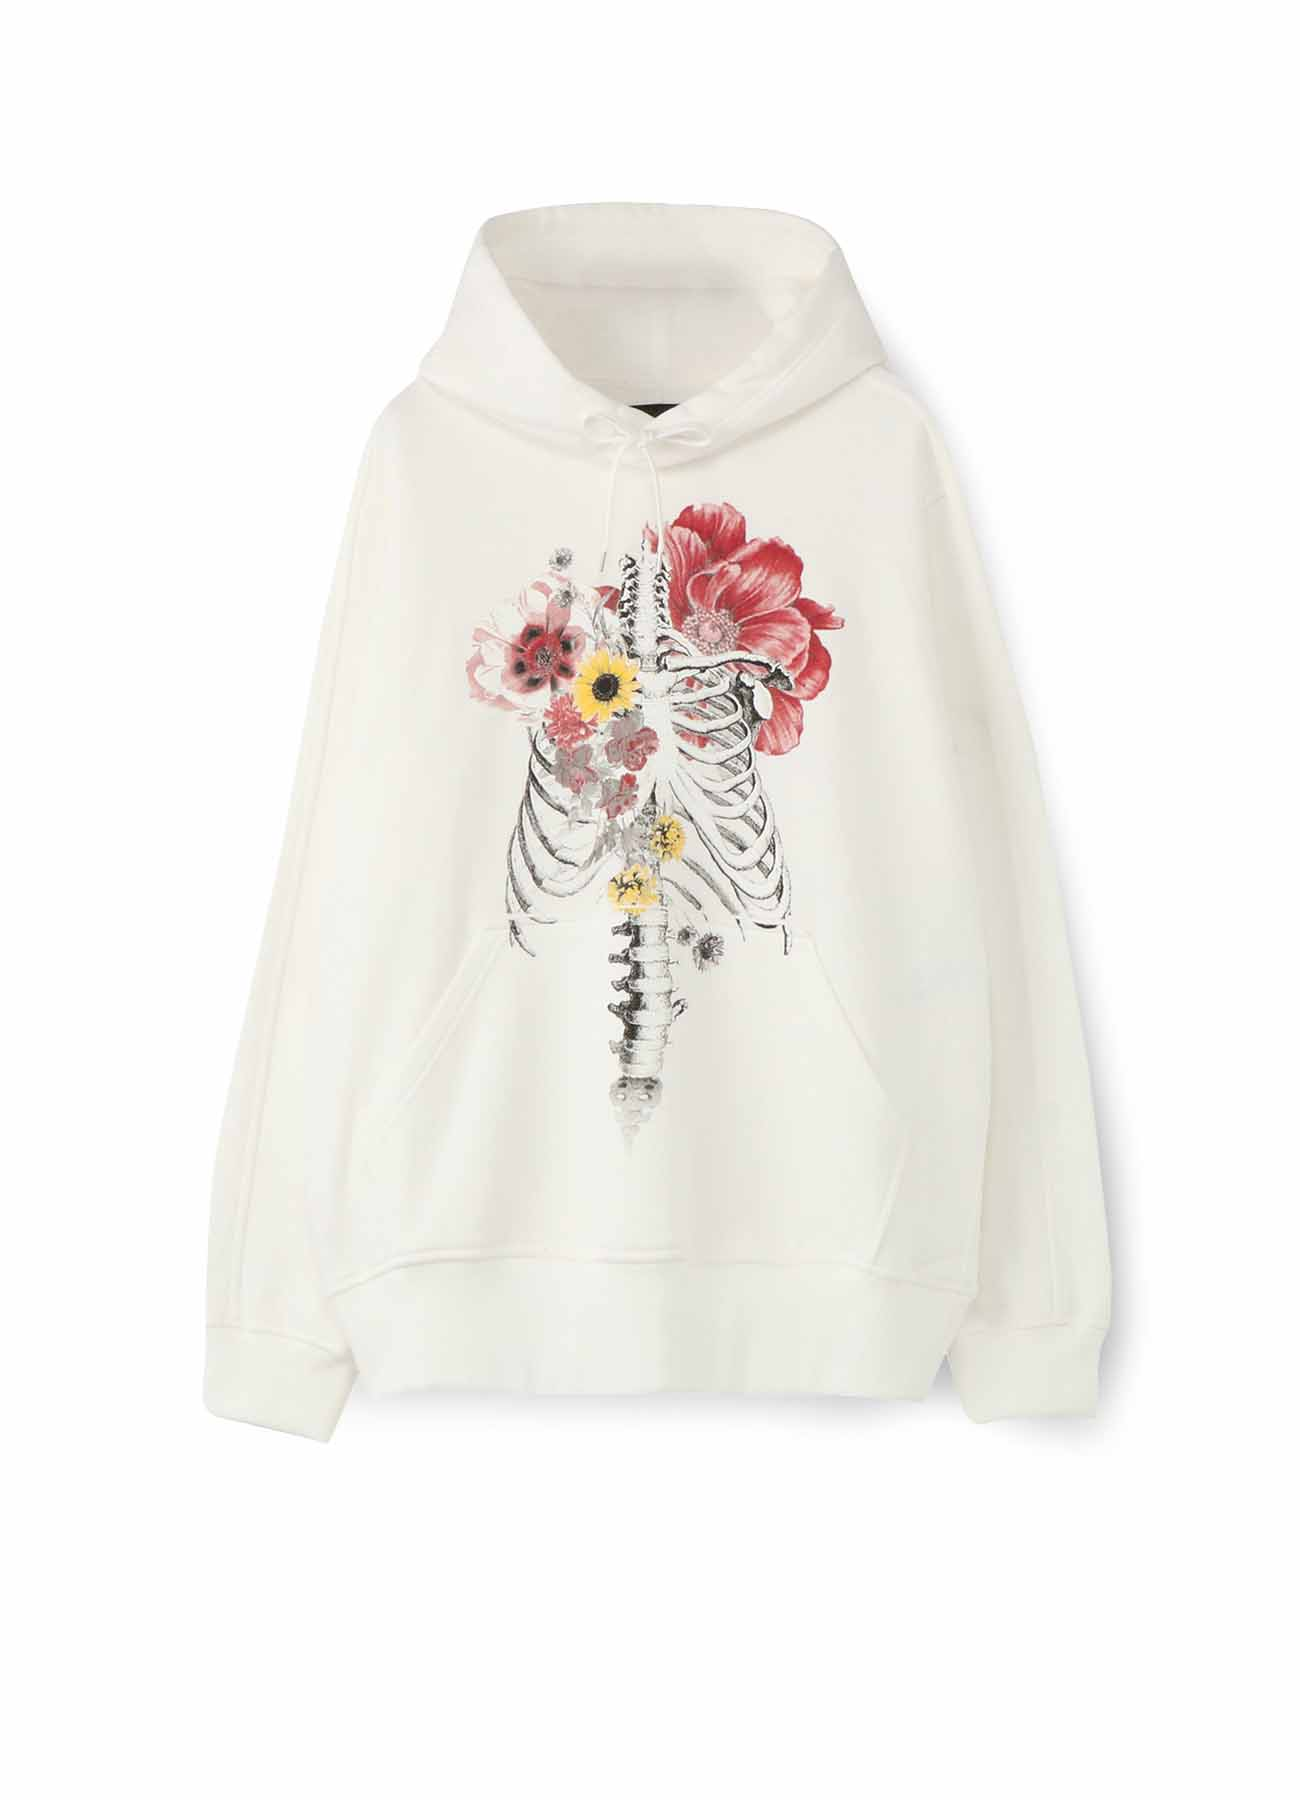 French Terry Stitch WorkBones and Flowers Hoodie